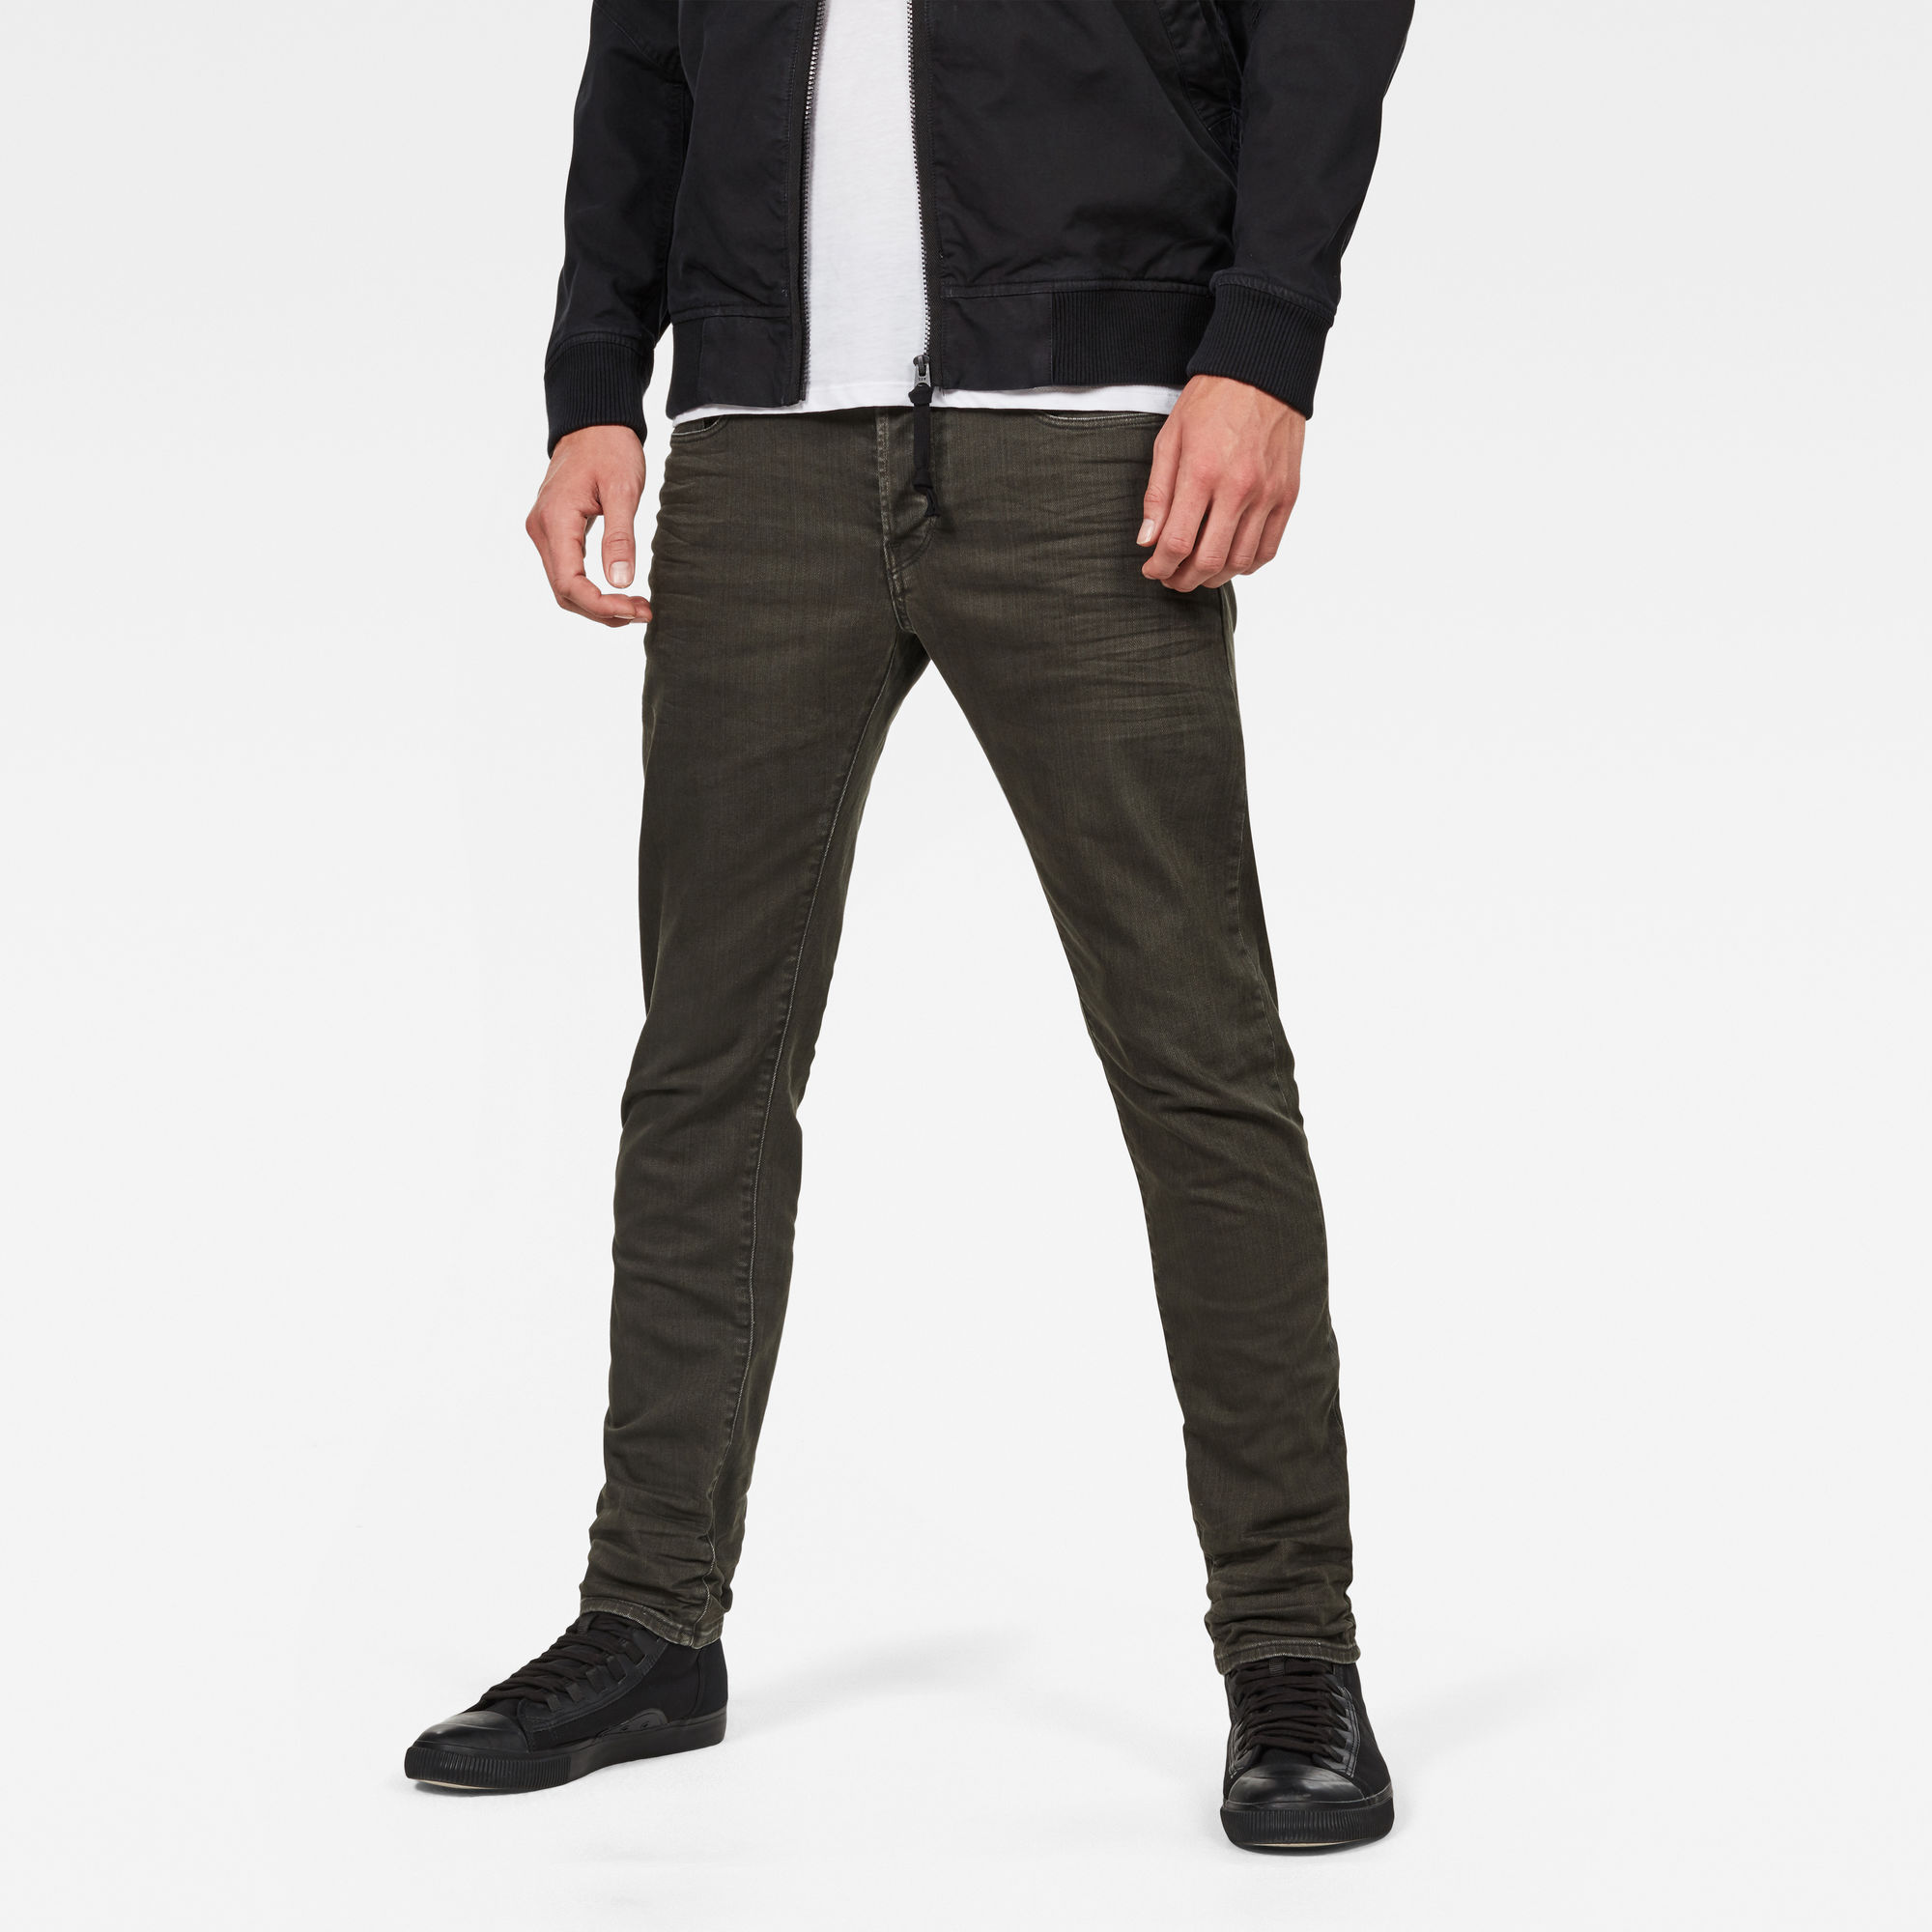 Image of G Star Raw 3301 Deconstructed Slim Colored Jeans